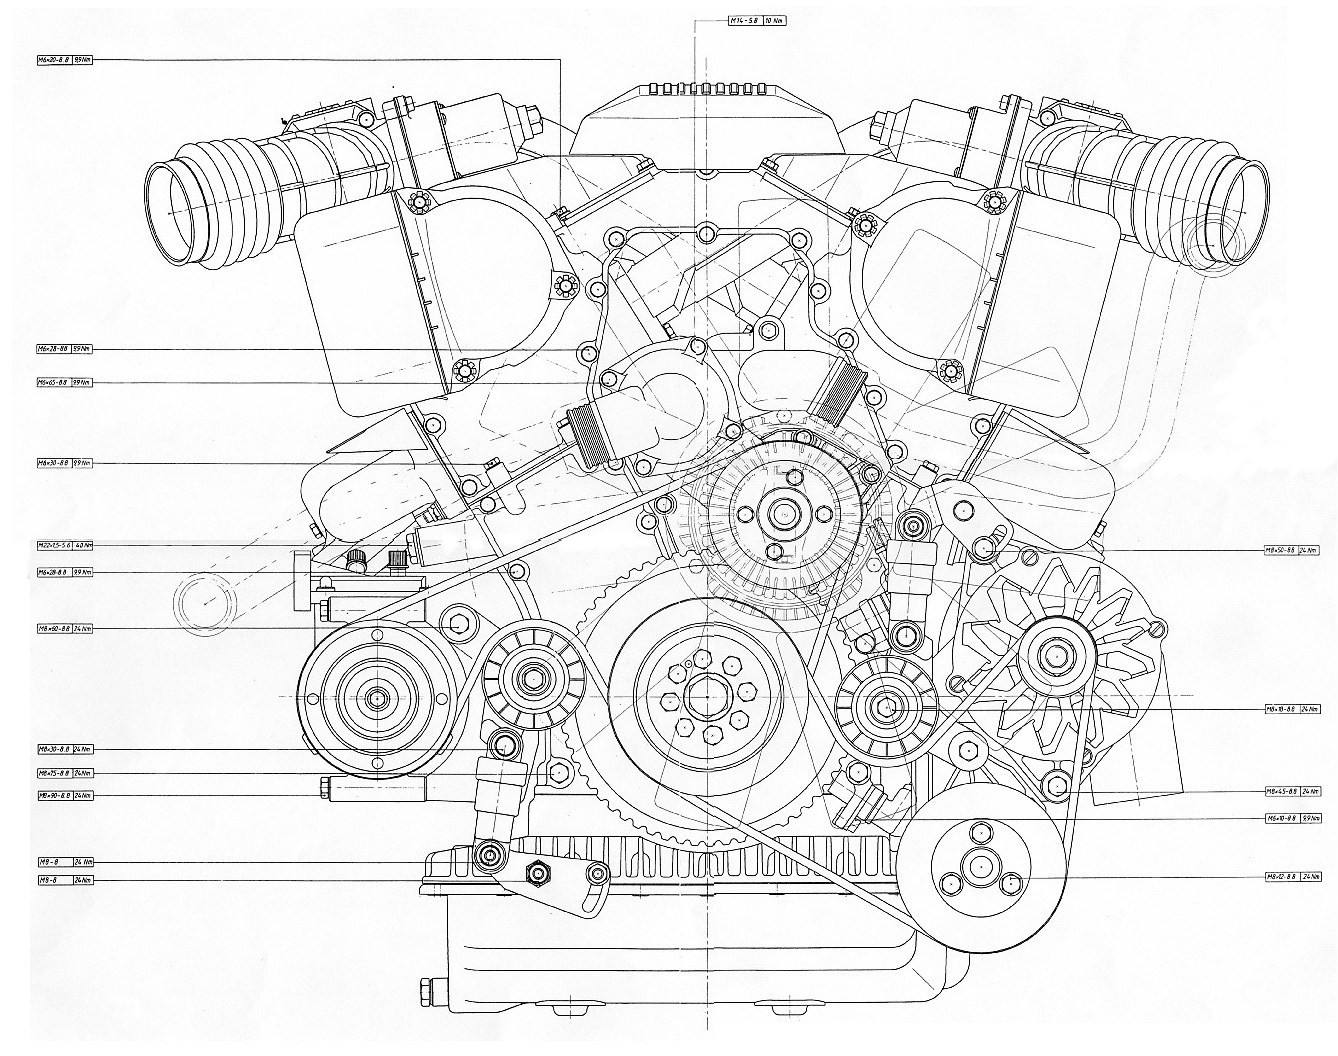 V12 Engine Blueprint Bmp 4mb Front View